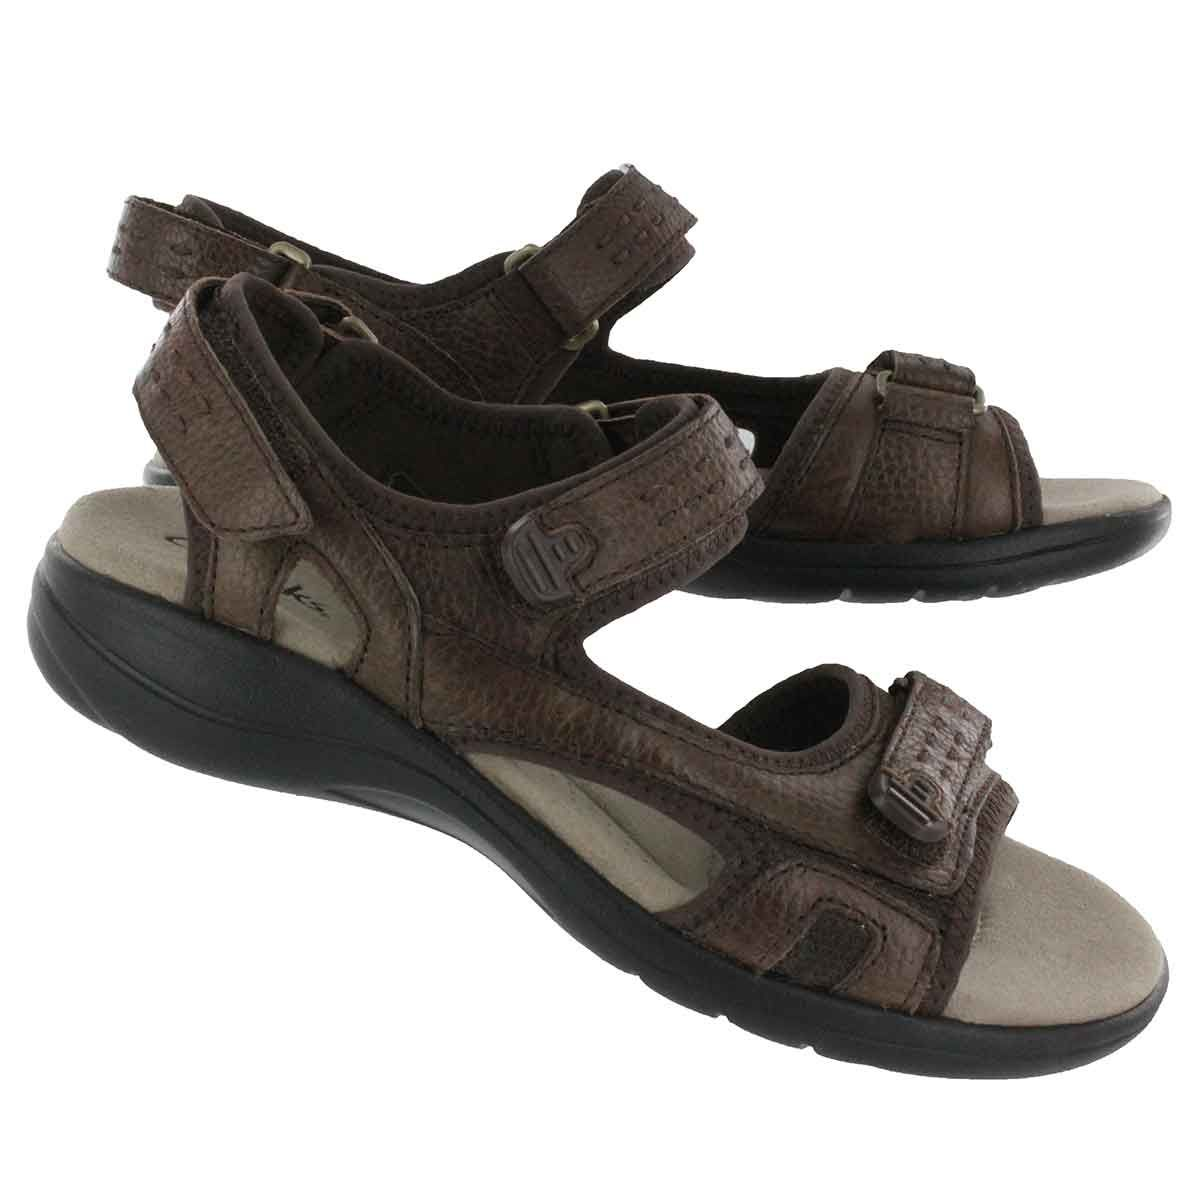 62cb8ad8ef50 Clarks Women s MORSE TOUR brown 2 strap sport sandals 65579